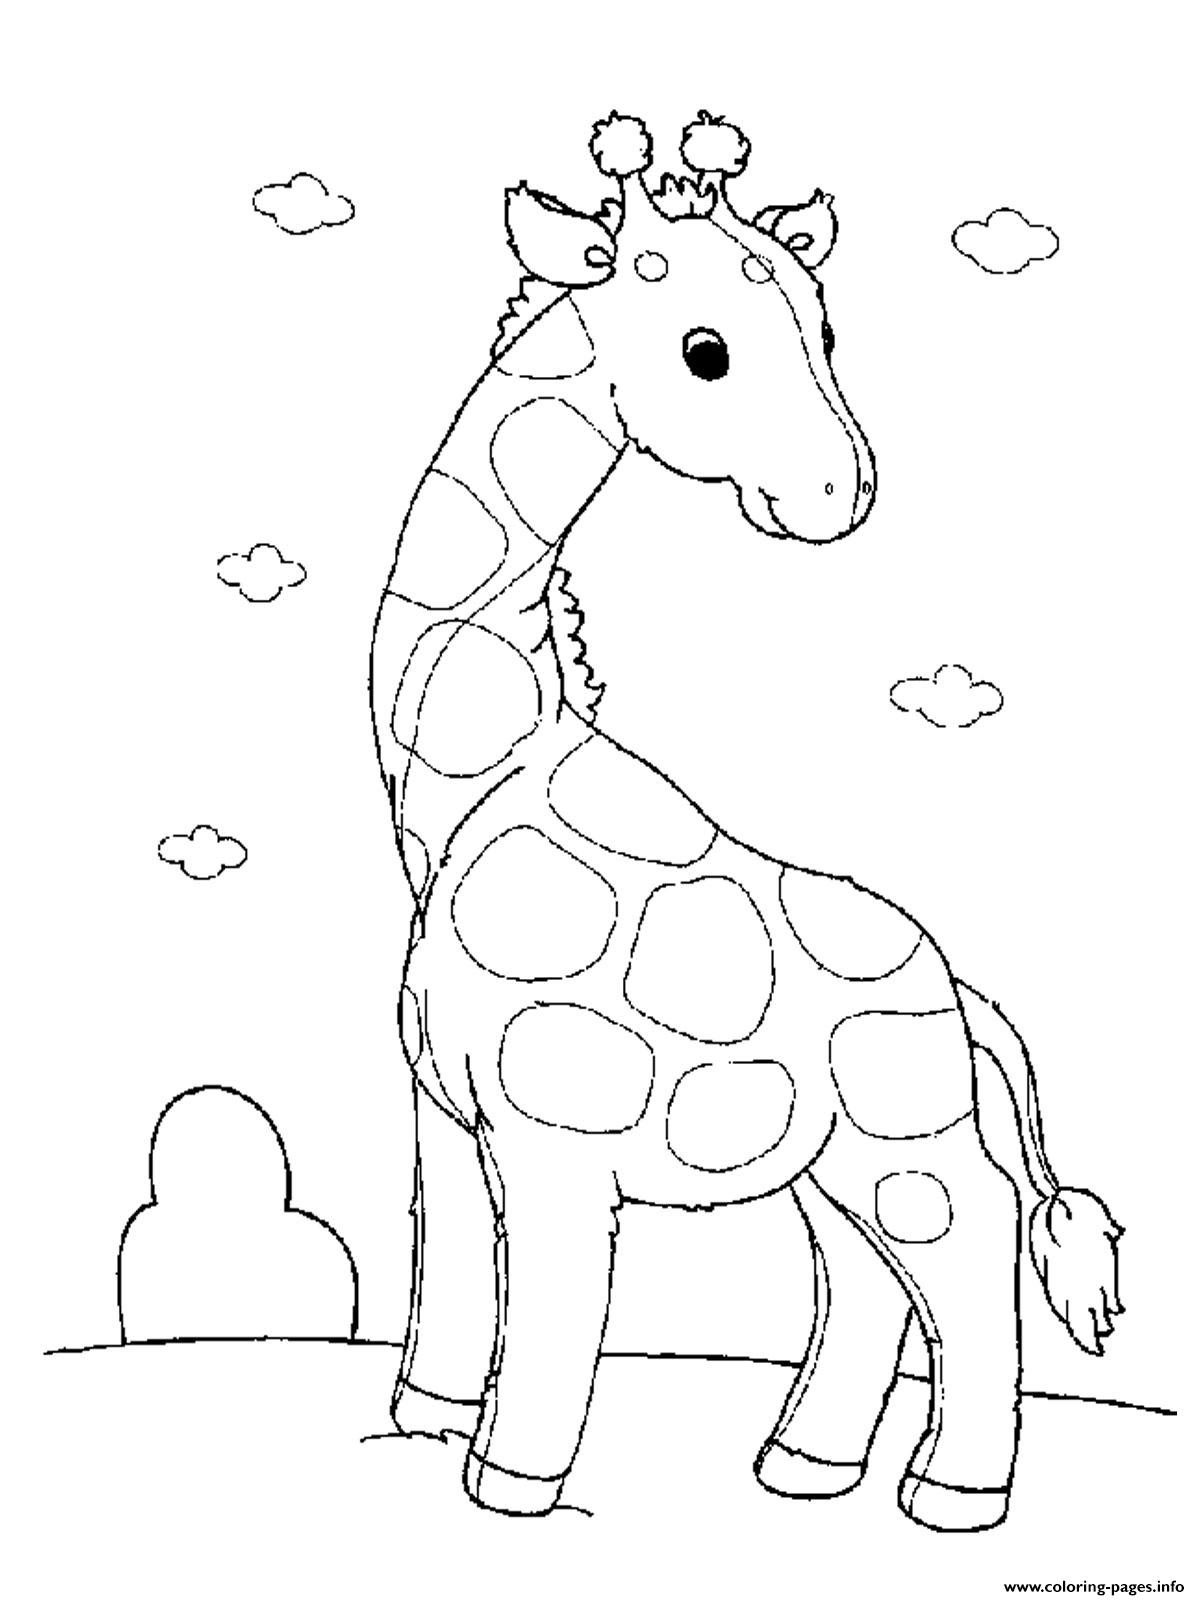 Animal Coloring Sheets For Girls  Baby Giraffe S For Girls Animals Printable13b0 Coloring